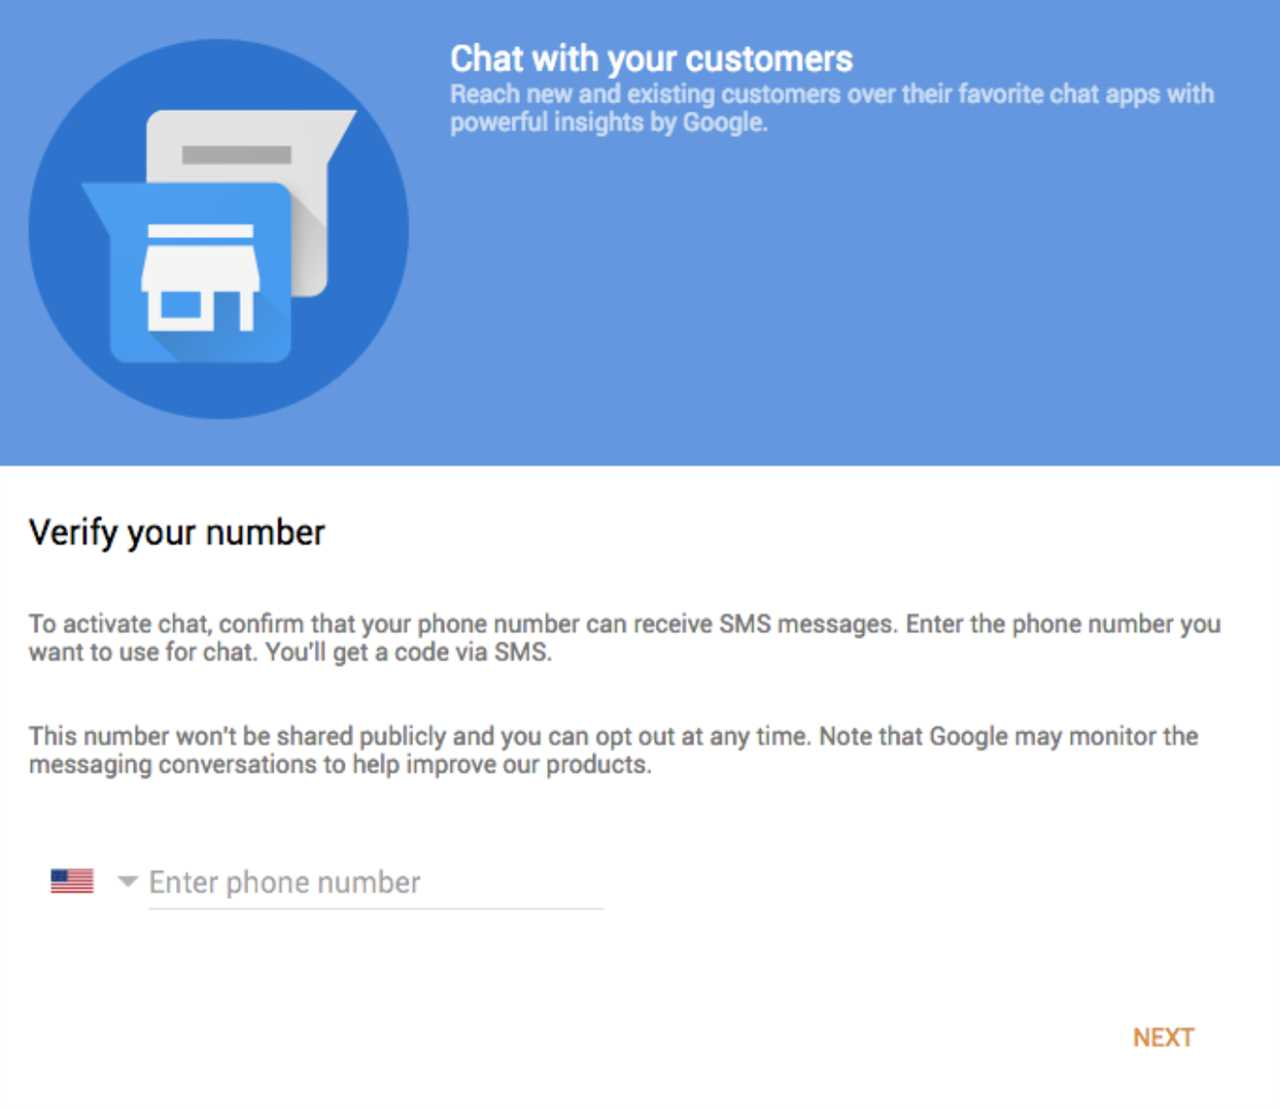 Chat with your customers via your Google My Business page